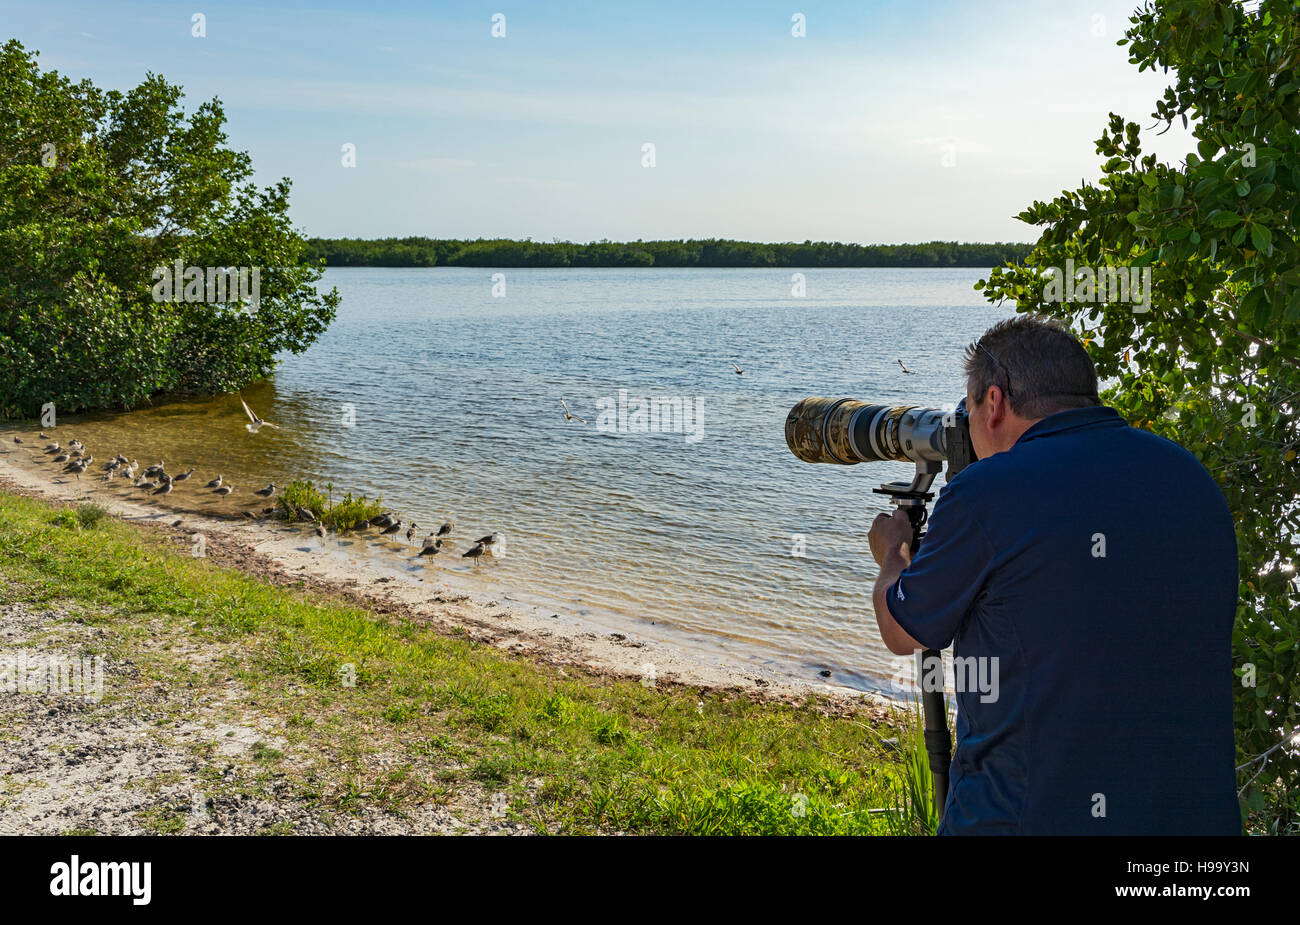 Florida, Sanibel Island, J.N. 'Ding' Darling National Wildlife Refuge, Wildlife Drive, photographer photographing - Stock Image